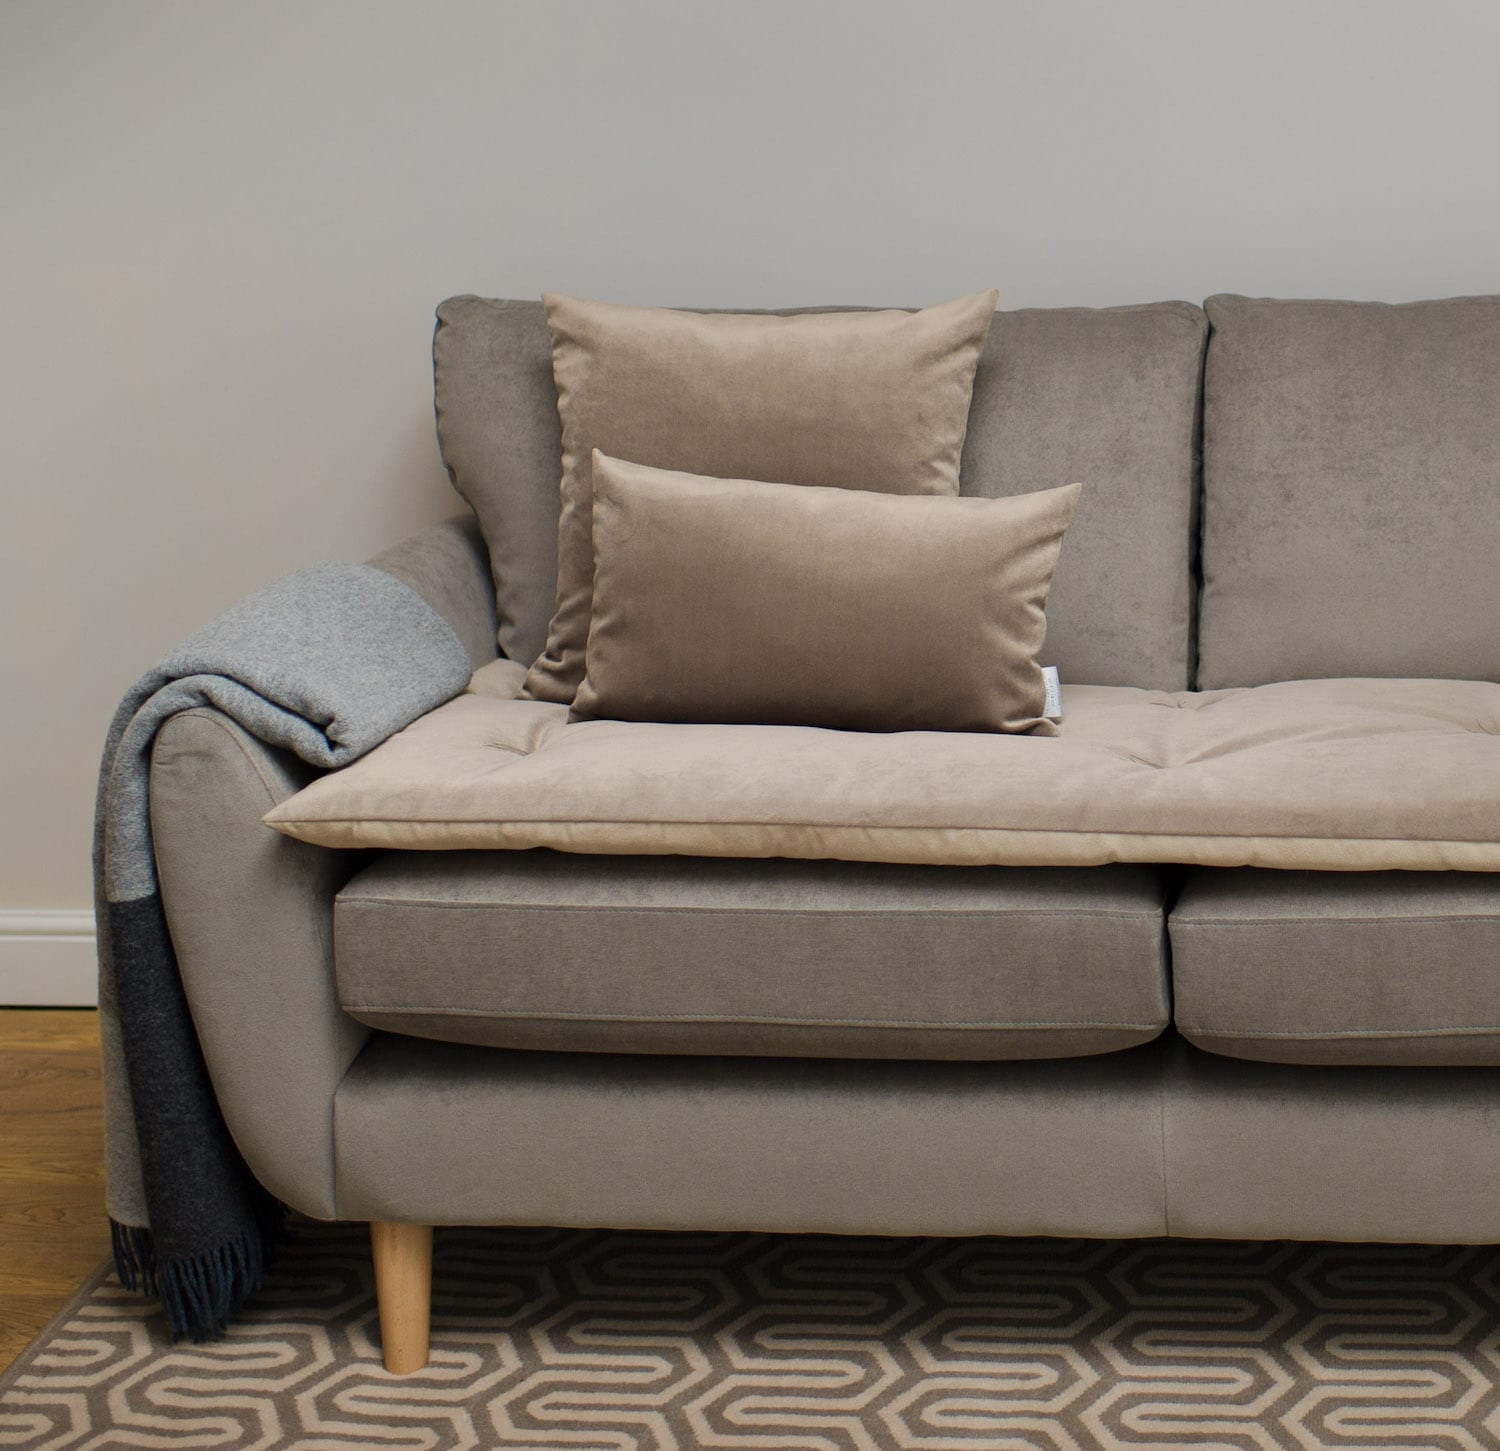 Sofa Topper In Taupe Velvet The Lounging Hound